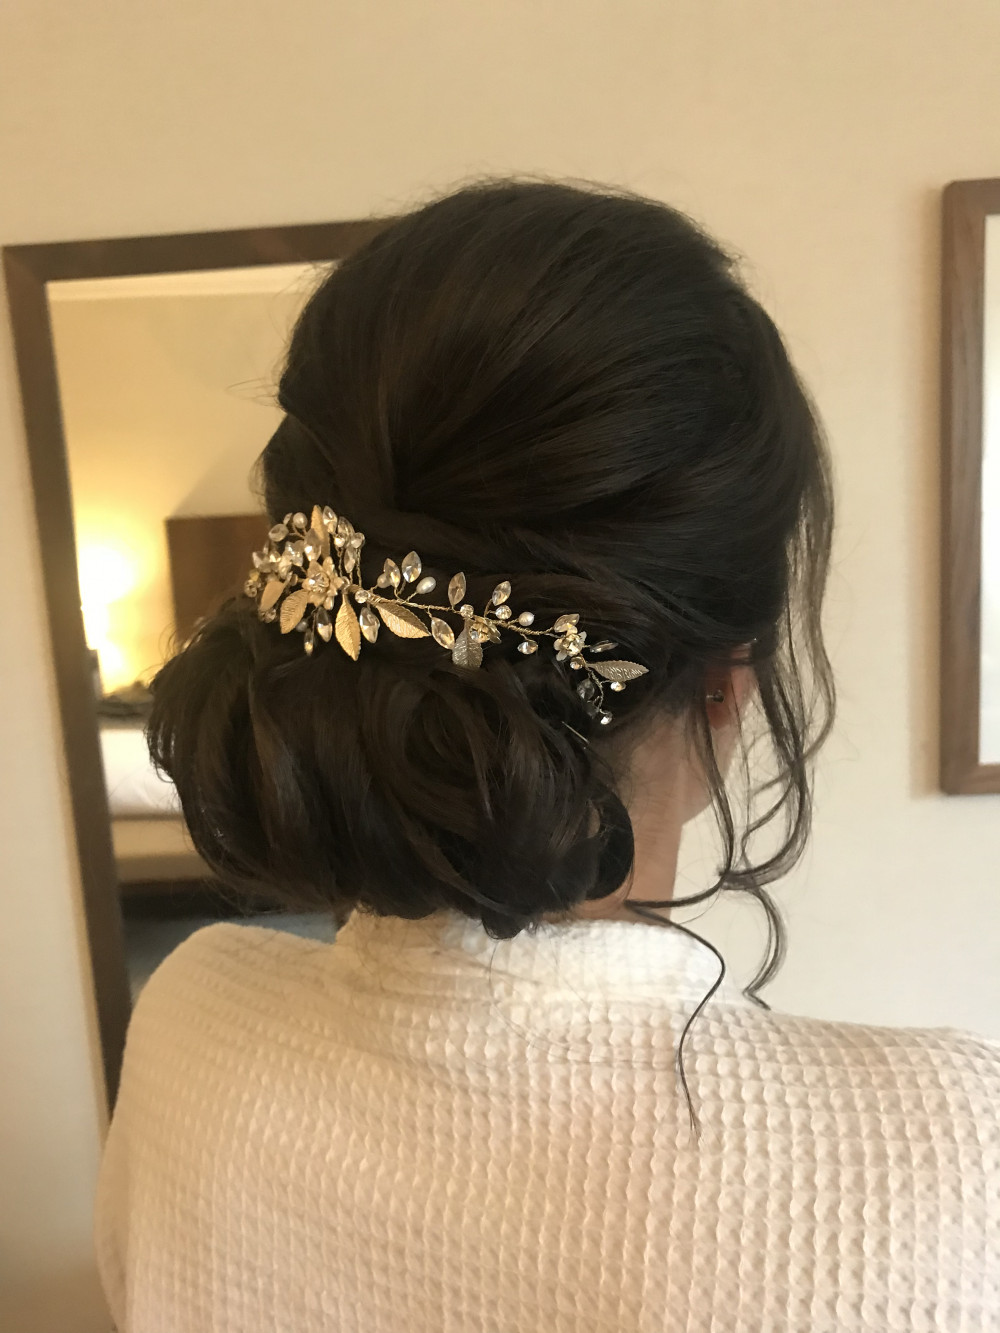 Hair up for my bride who was celebrating her wedding party back in the uk. 